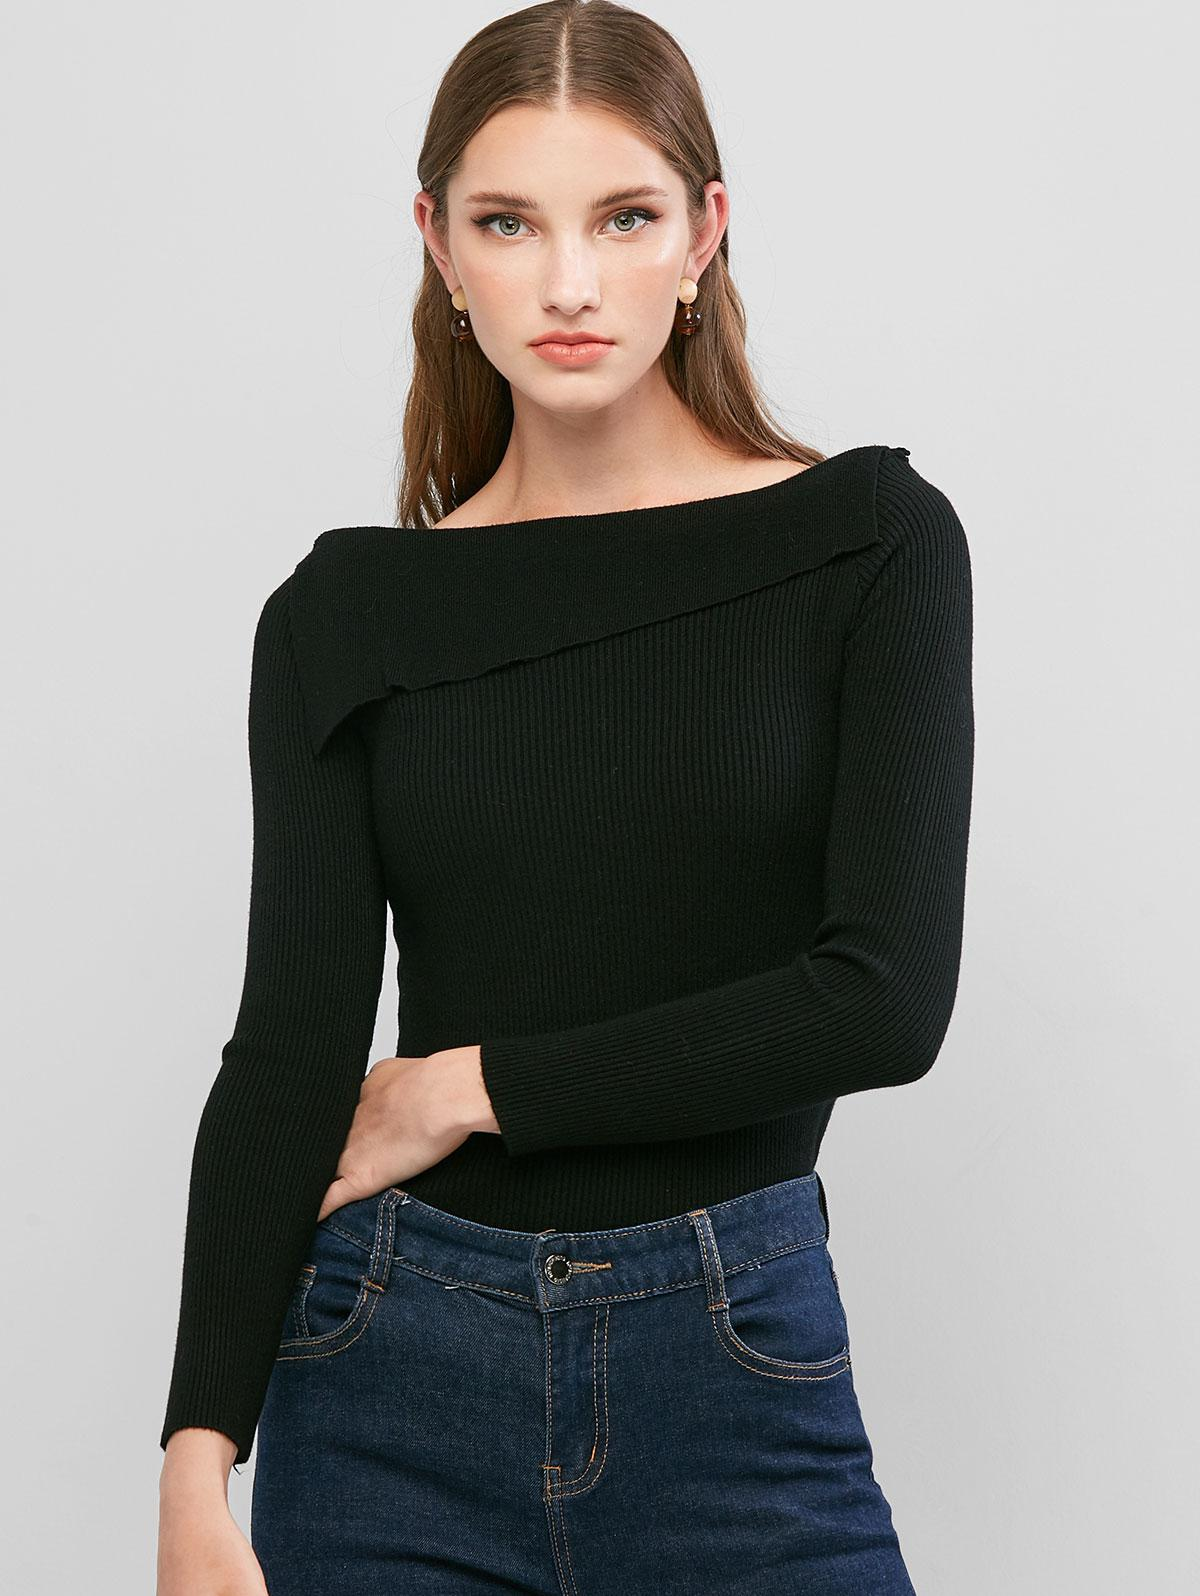 Square Neck Ribbed Solid Knitwear